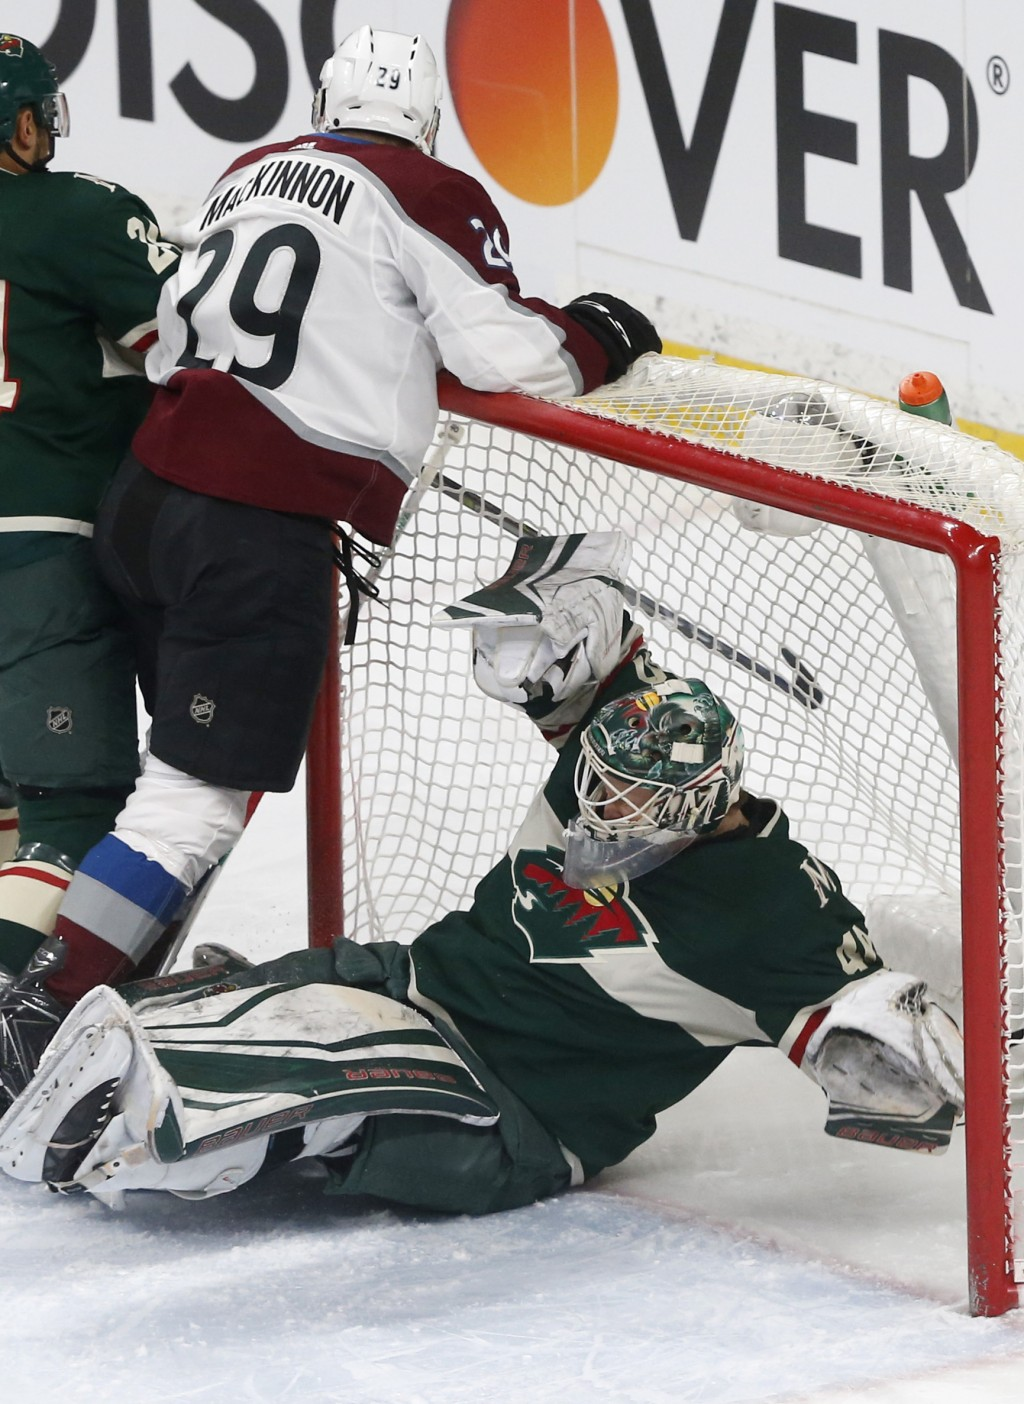 Minnesota Wild goalie Devan Dubnyk winds up on the ice as Colorado Avalanche's Nathan MacKinnon collides with him in the first period of an NHL hockey